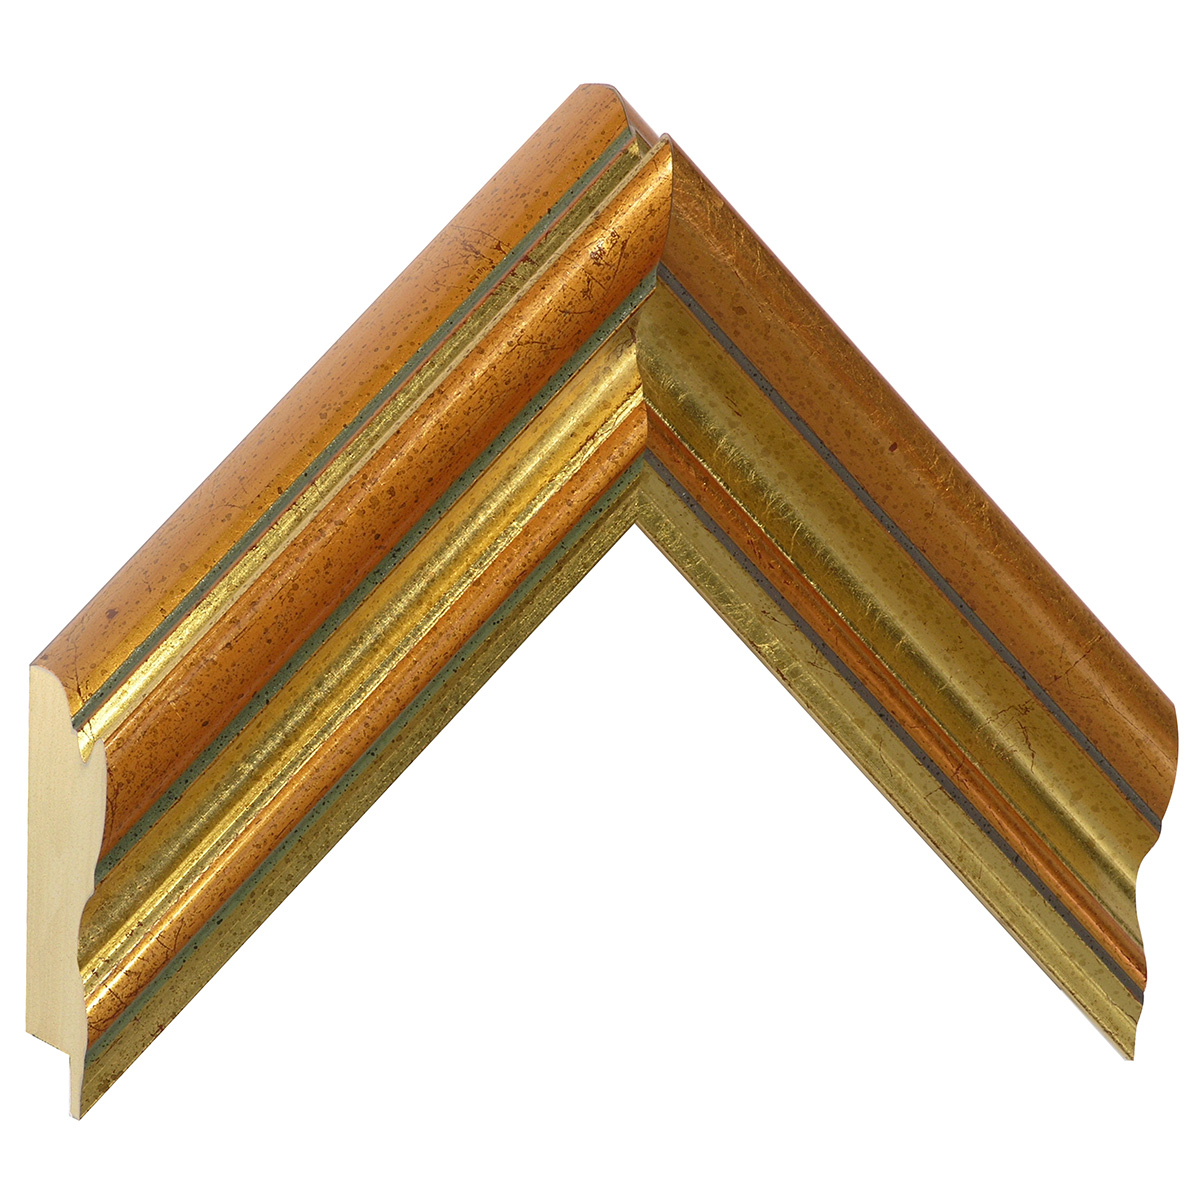 Moulding ayous, width 55mm, height 45, copper gold